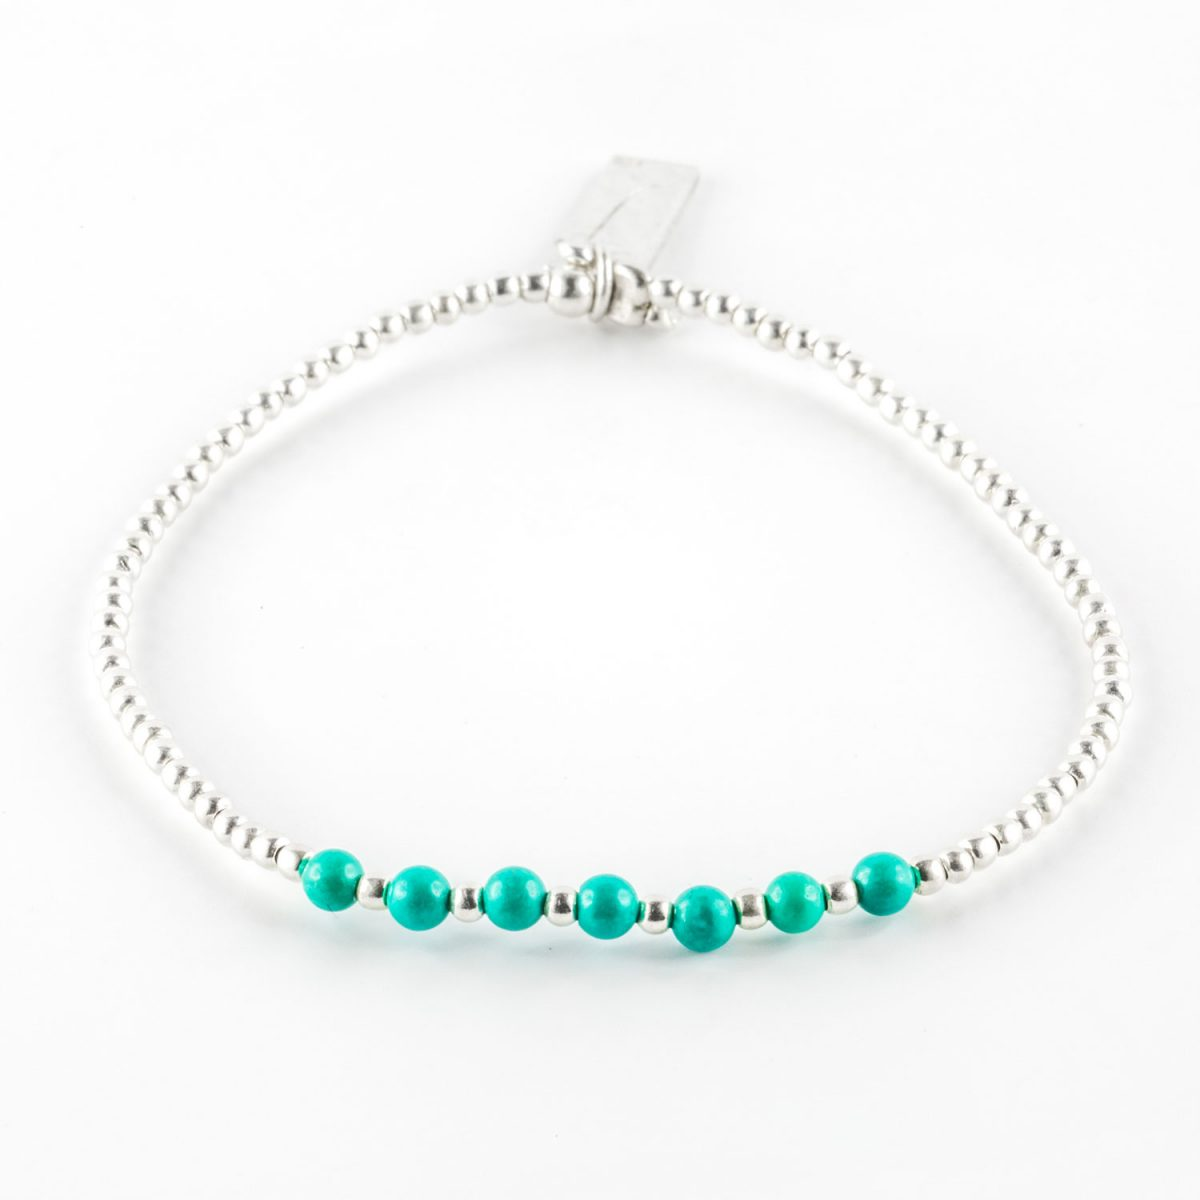 Elastic Bracelet And Solid Silver Beads And 7 Turquoise Beads